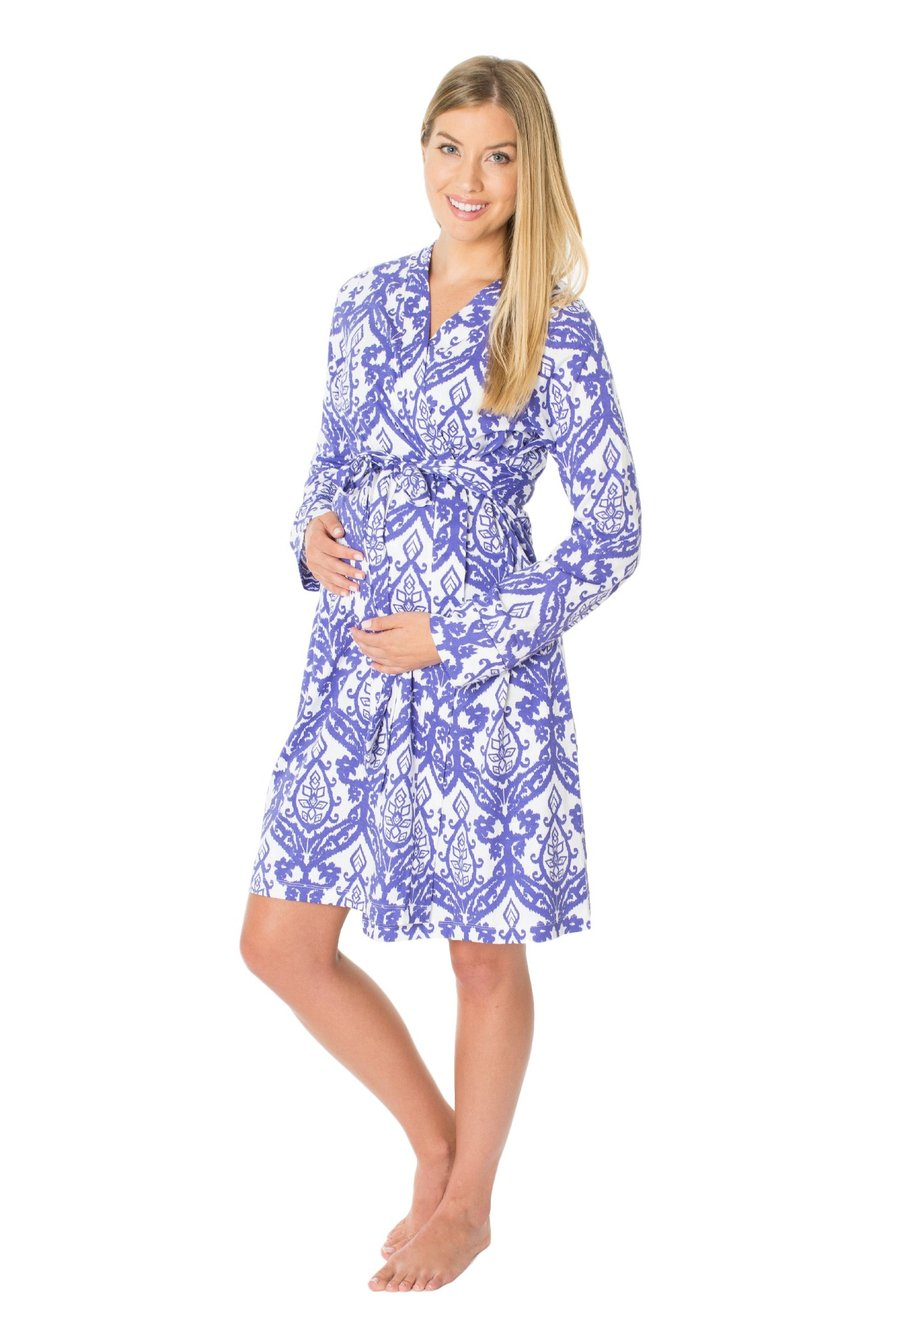 Brie Long Sleeve Maternity Nursing Delivery Robe